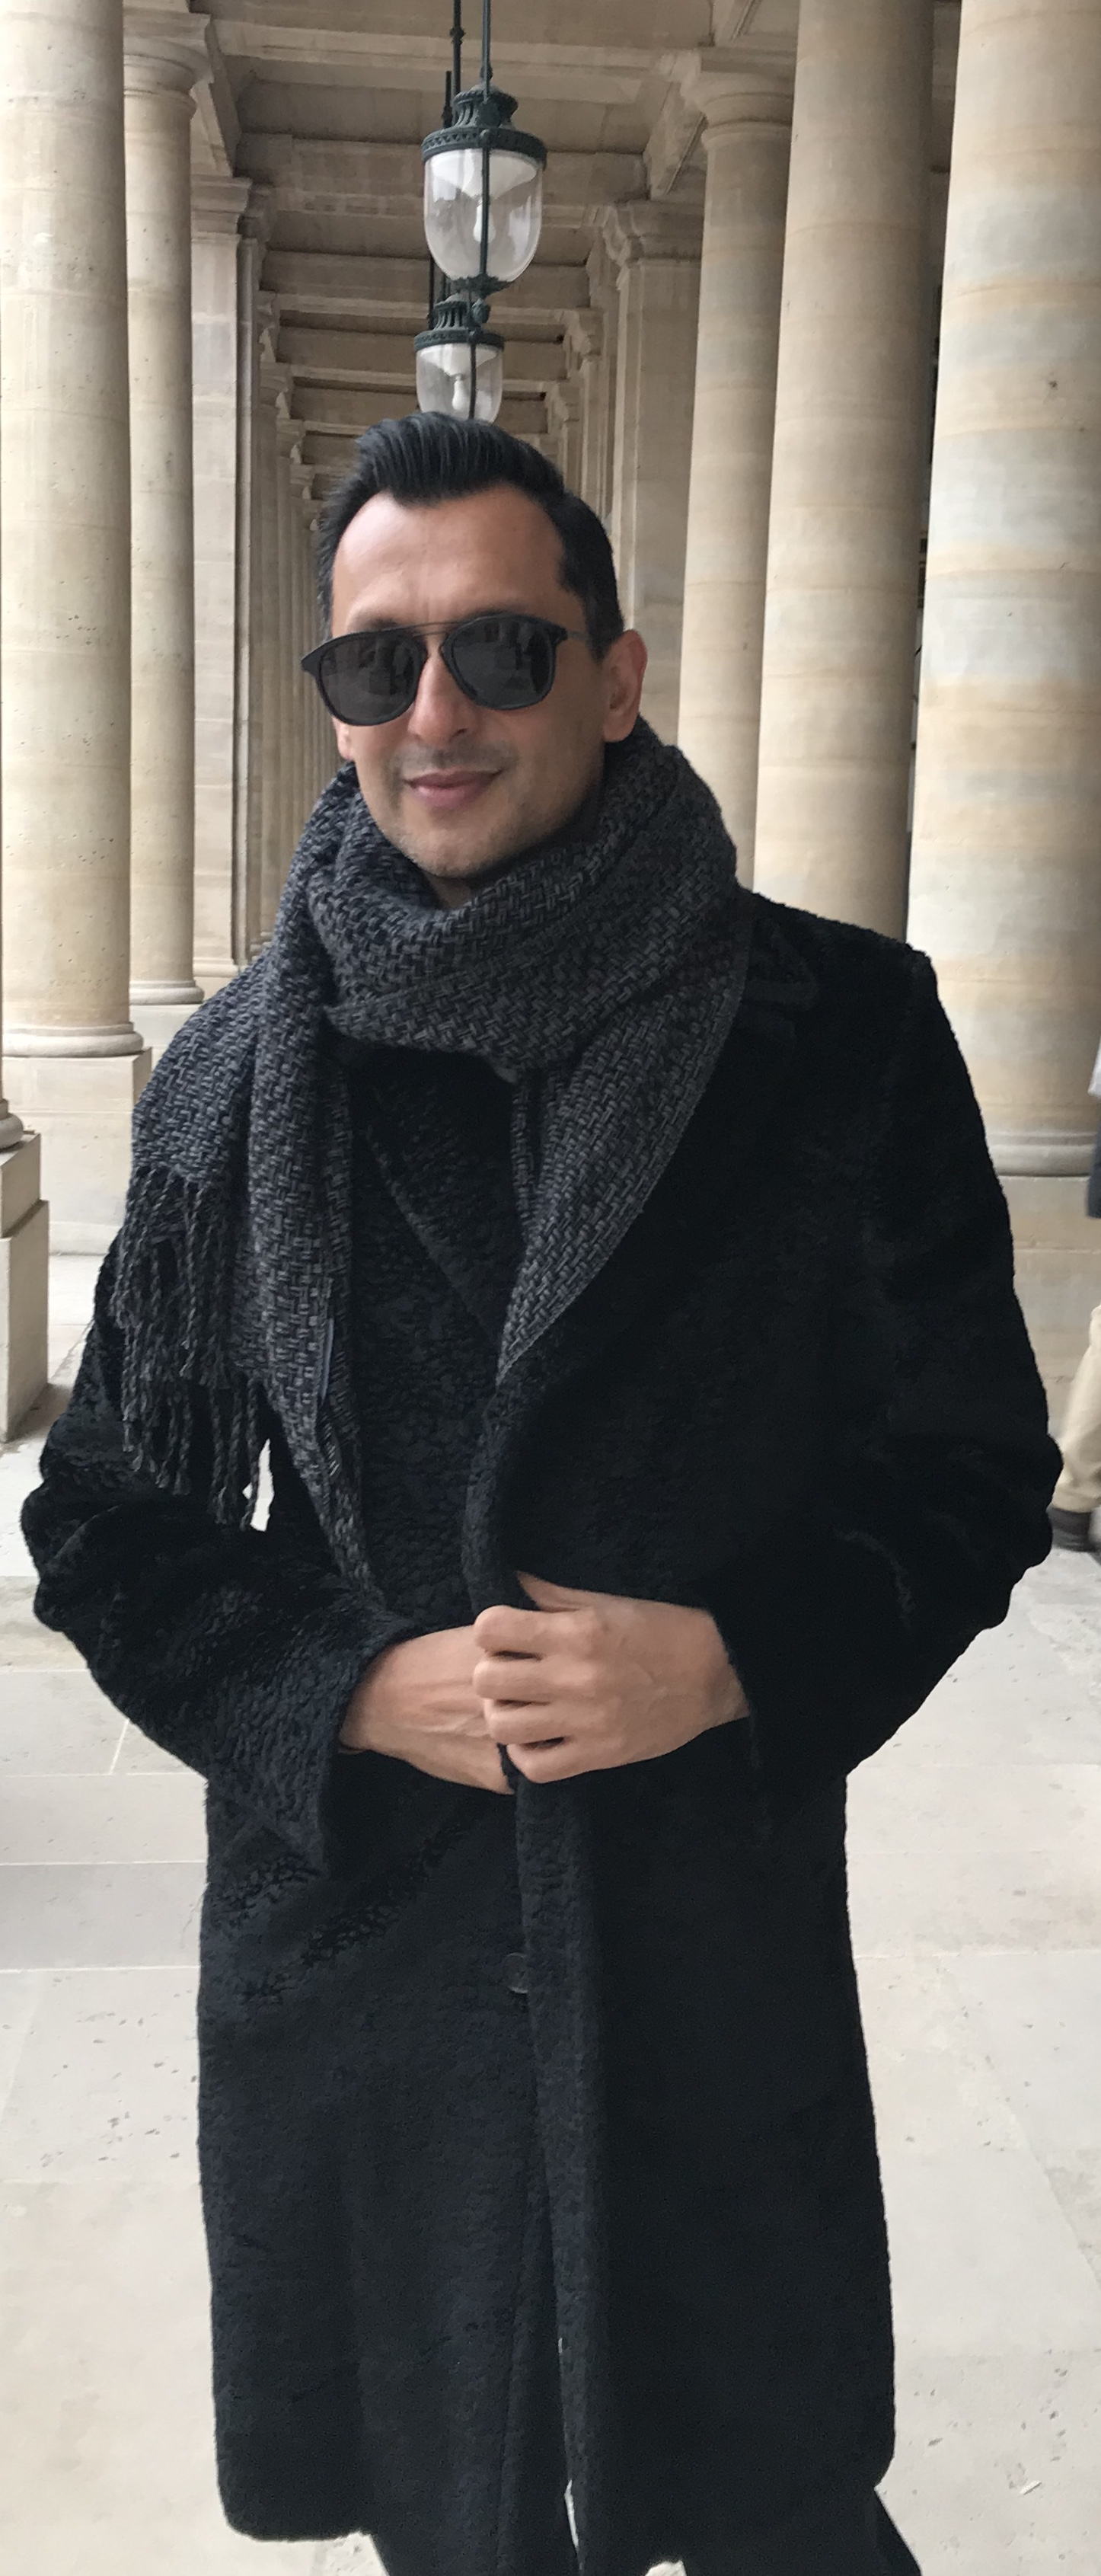 In Nicole Farhi astrakhan at the Palais Royal